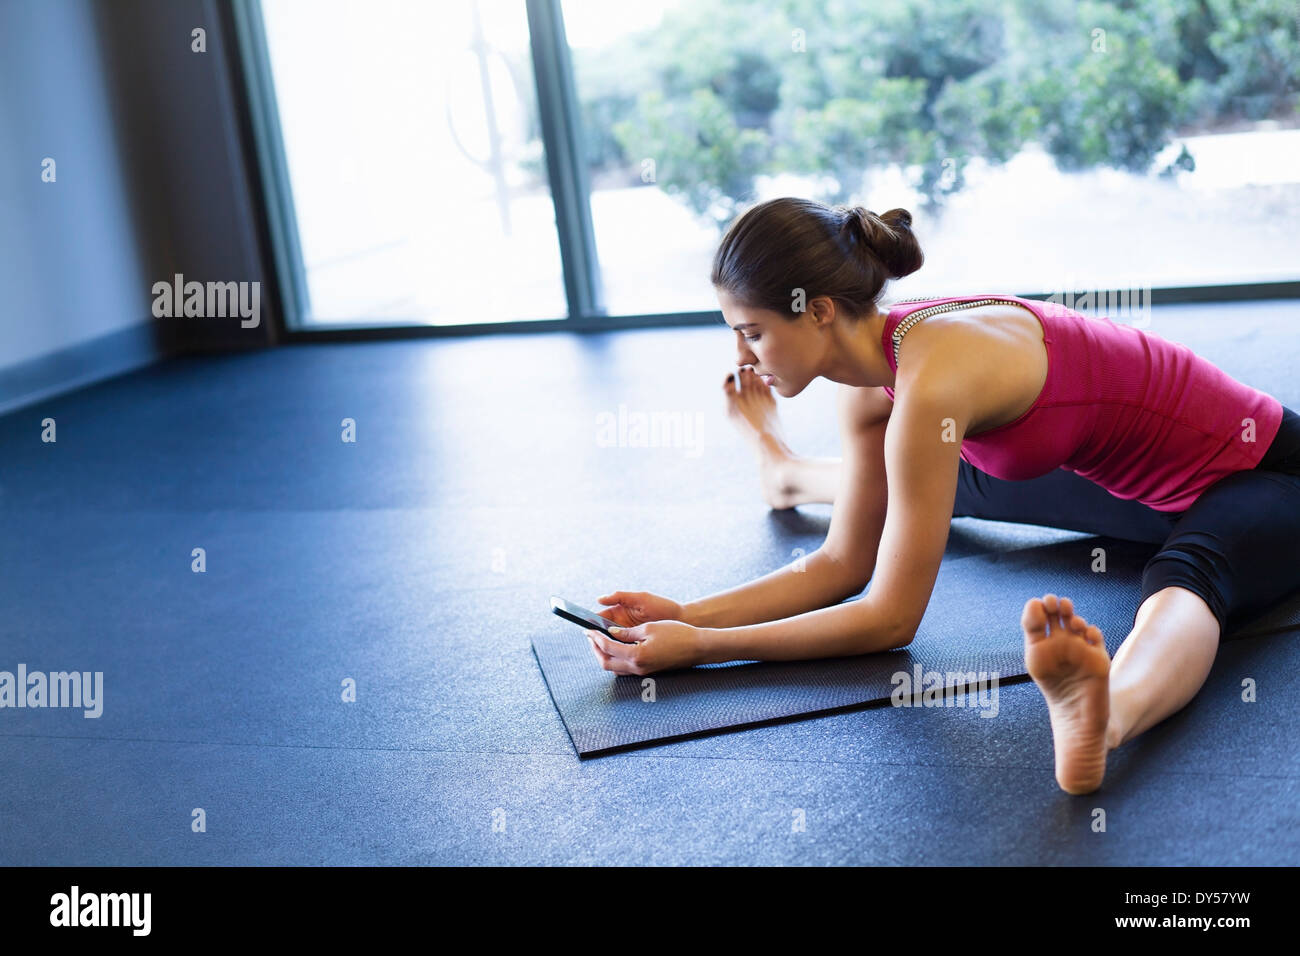 Young woman in yoga posture using cellular phone - Stock Image